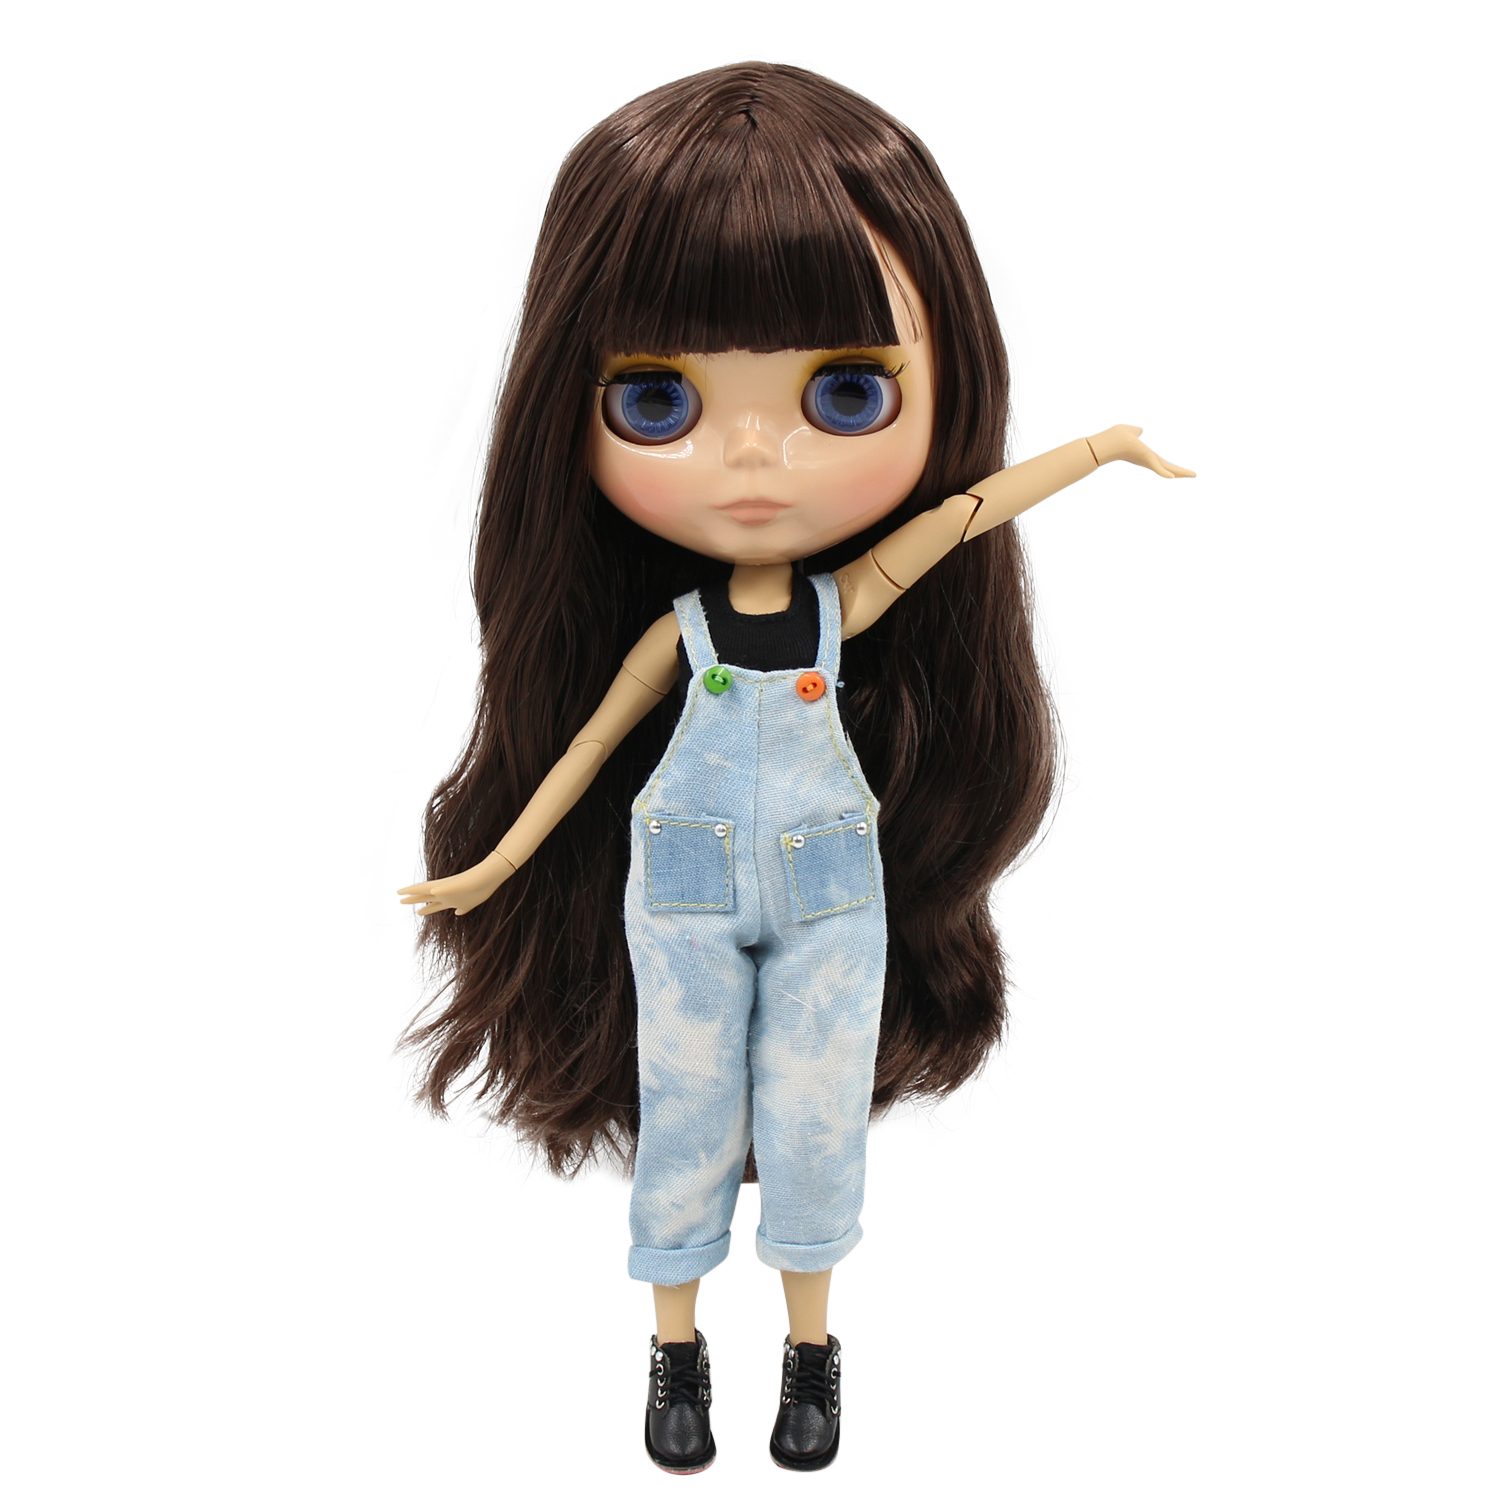 factory blyth doll 1 6 bjd tan skin joint body brown hair with bangs BL0222 30cm